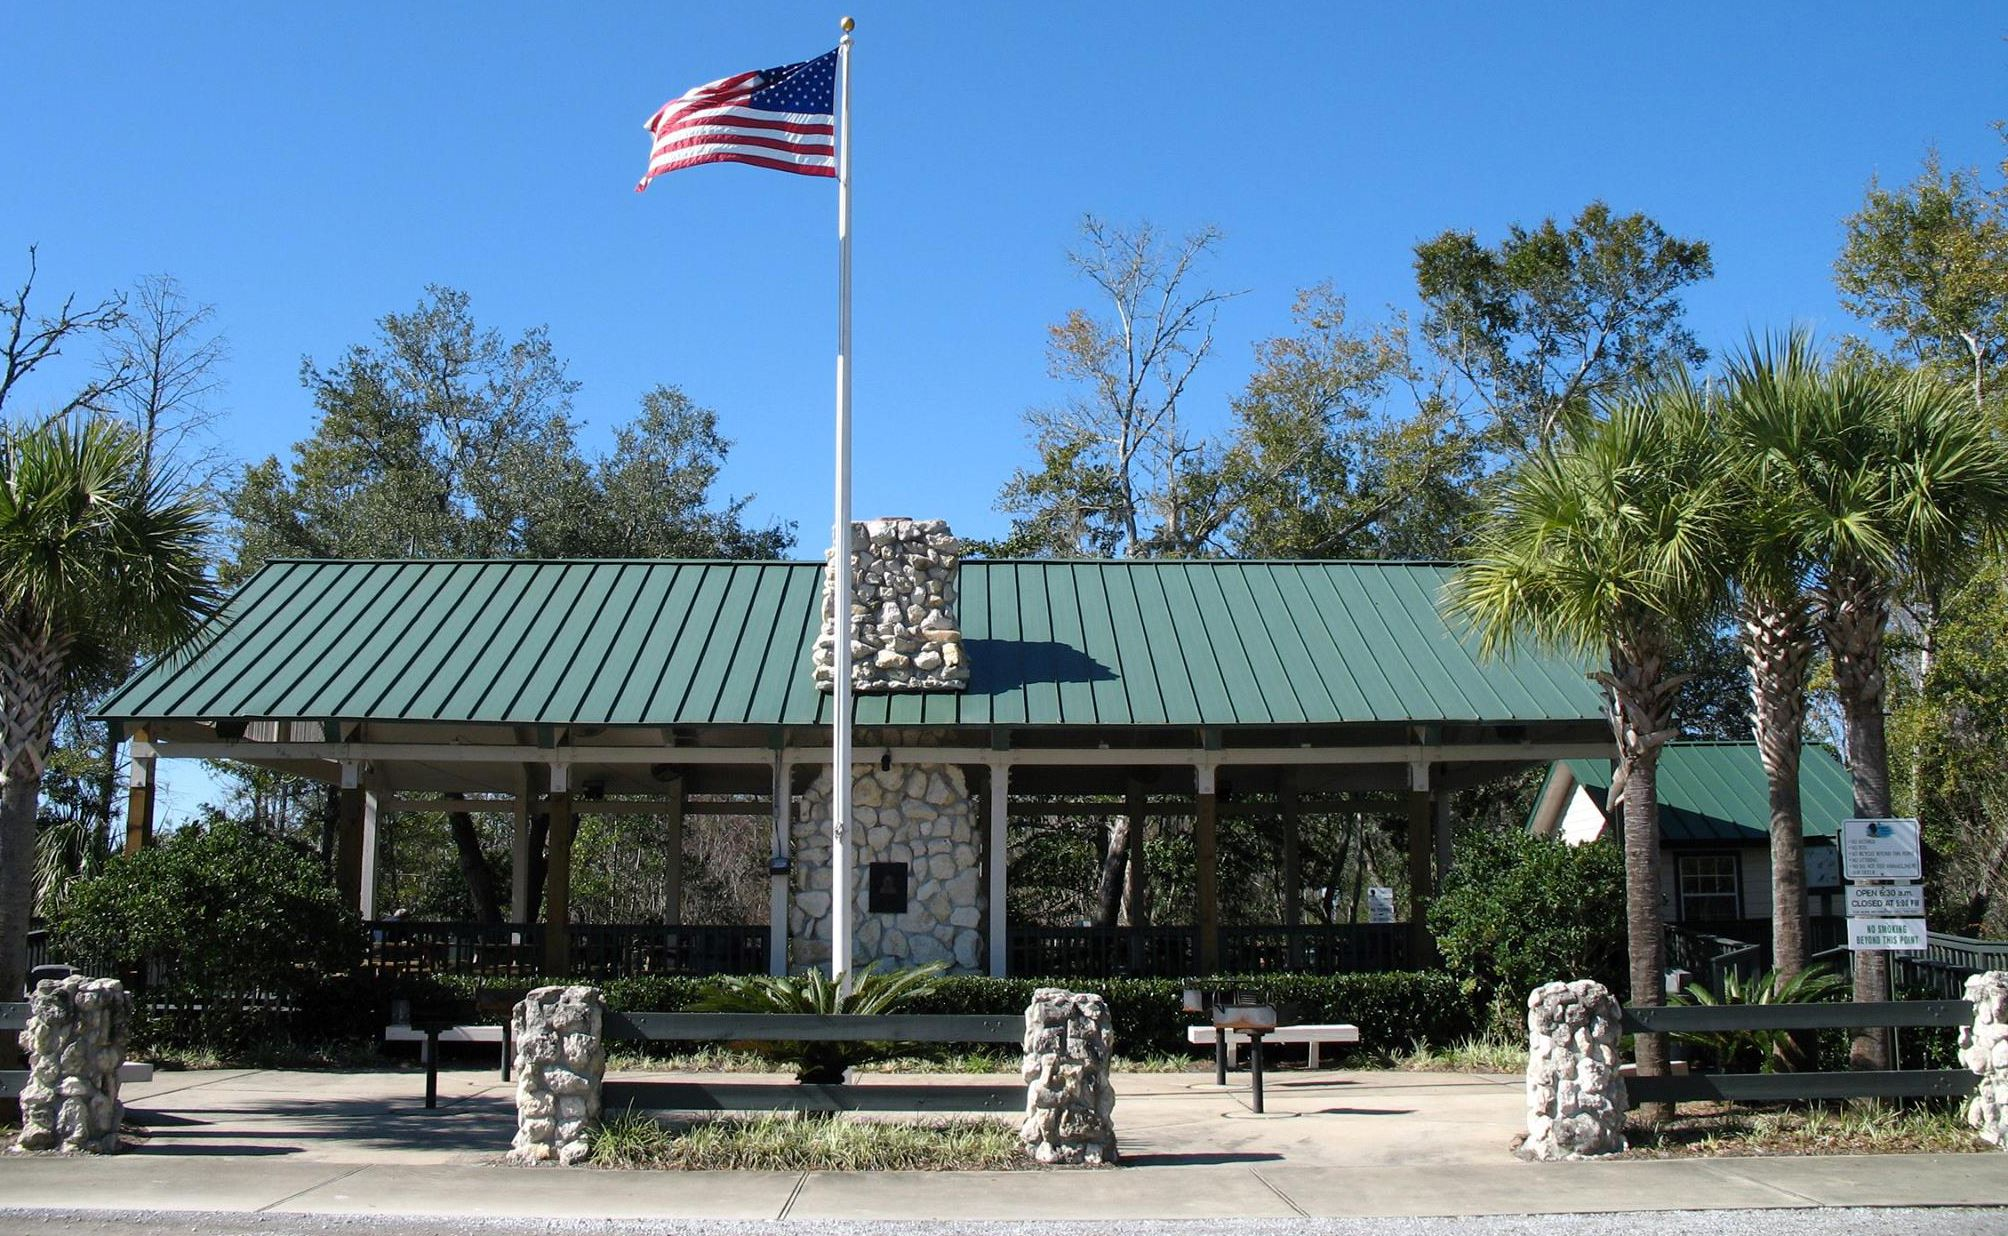 The pavilion located at Turkey Creek Park